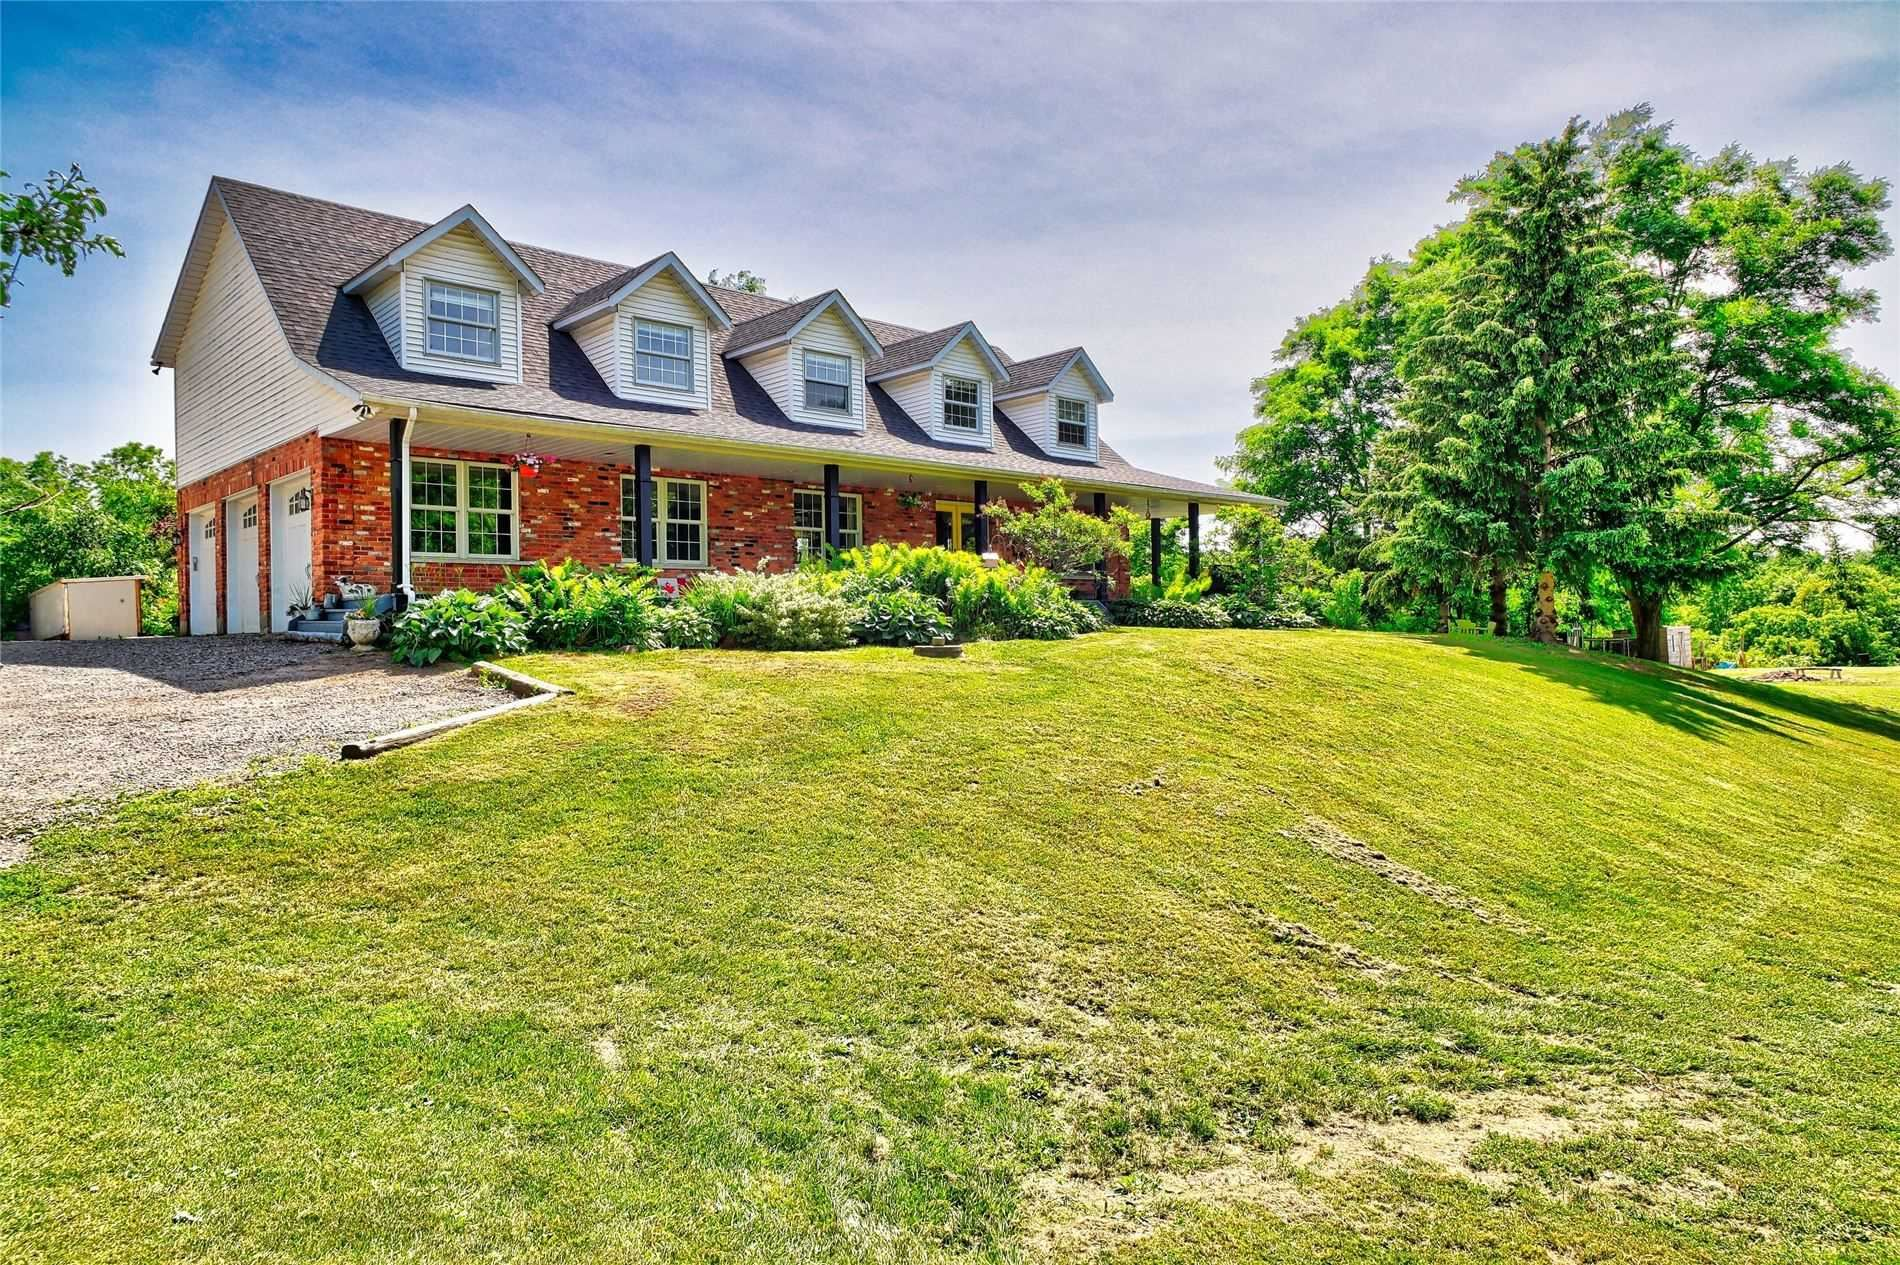 2905 Holland Rd, Thorold, ON L0S 1E6 - MLS#: X5297521